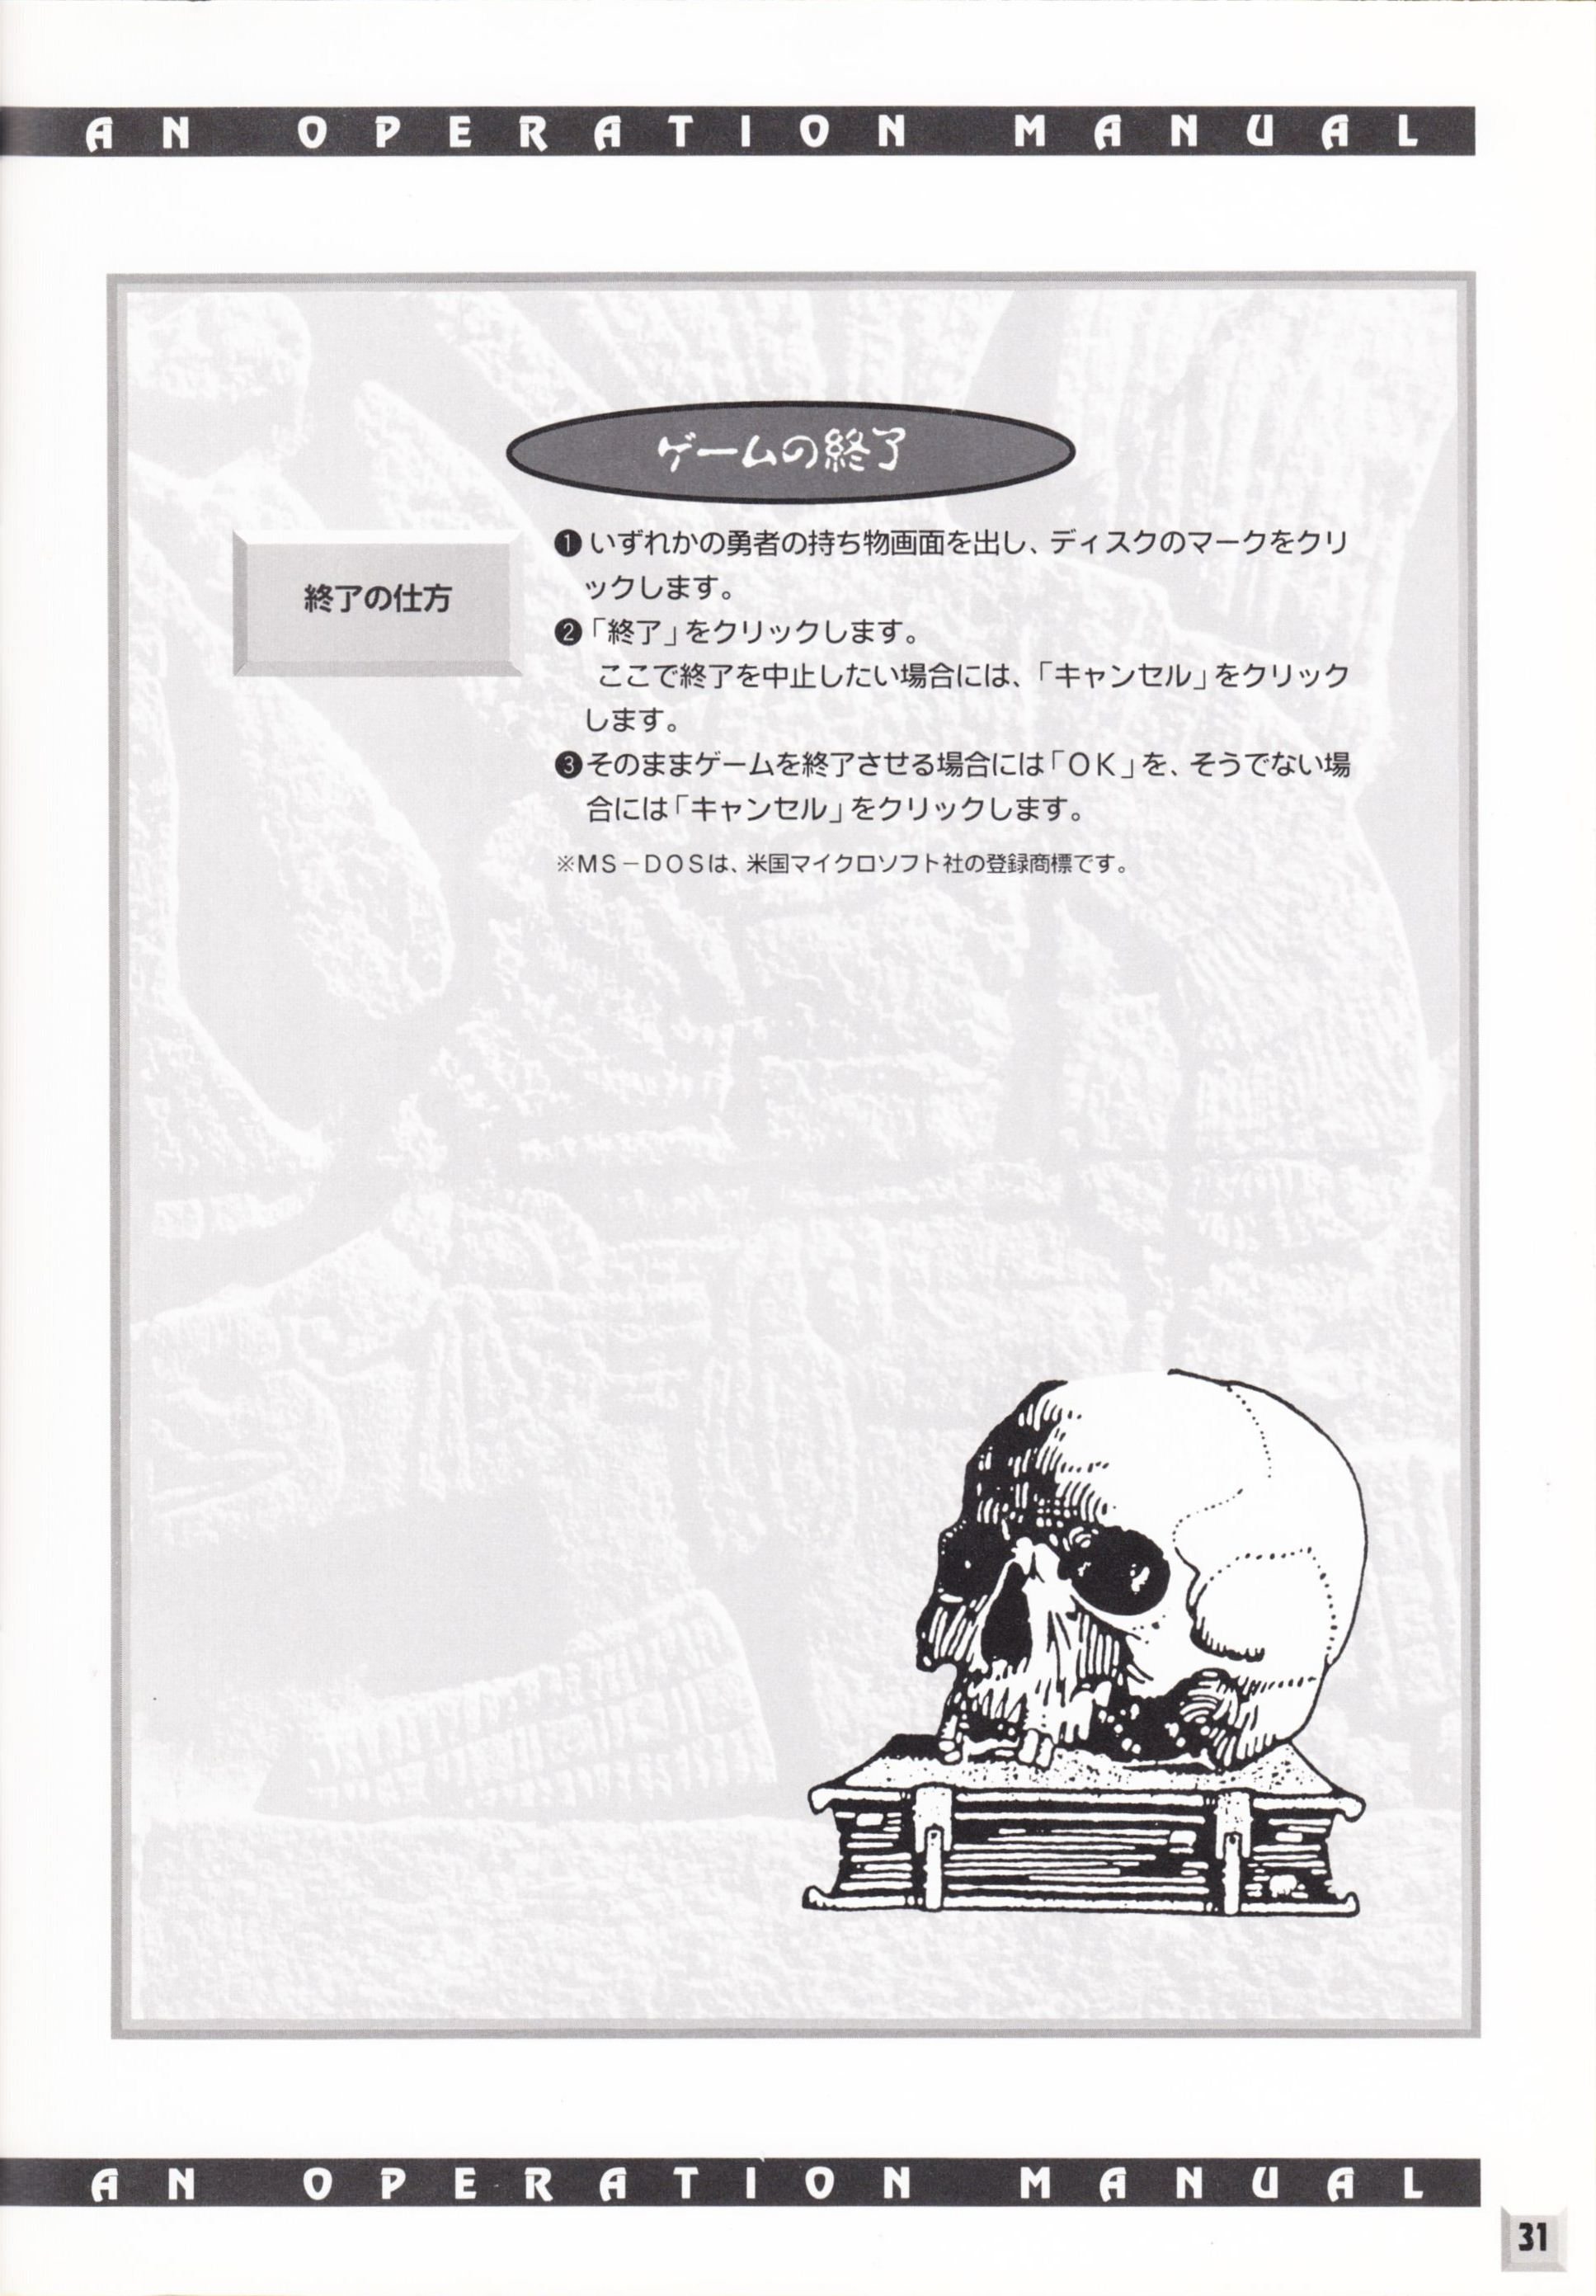 Game - Dungeon Master II - JP - FM Towns - An Operation Manual - Page 033 - Scan